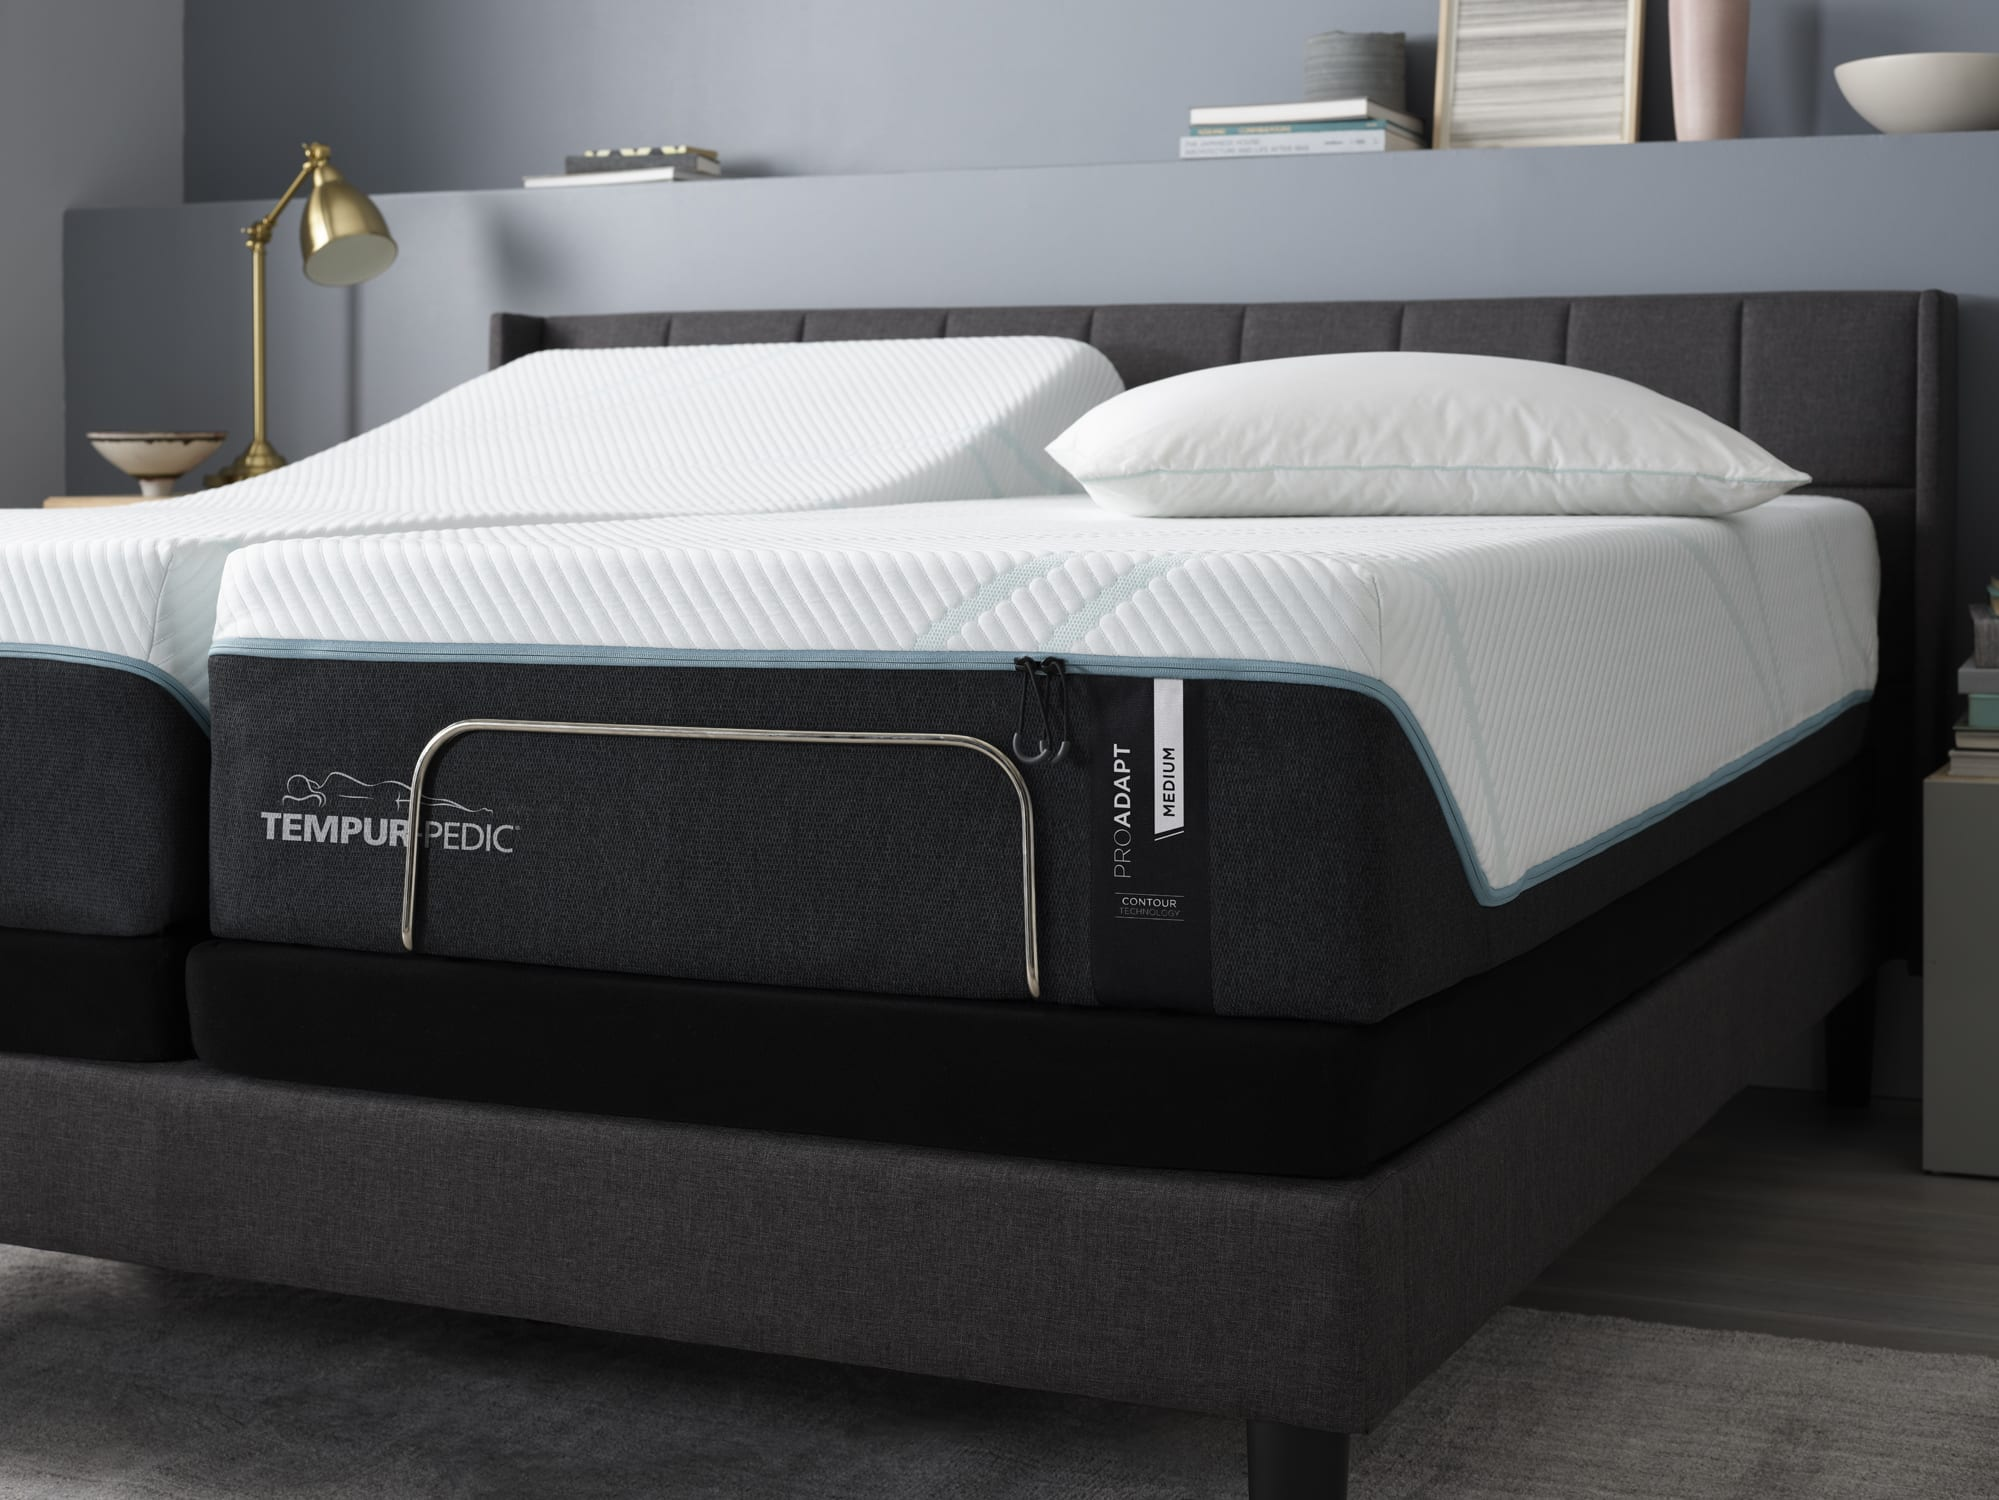 Tempur Pedic Pro Adapt Medium Best Mattress Best Mattress